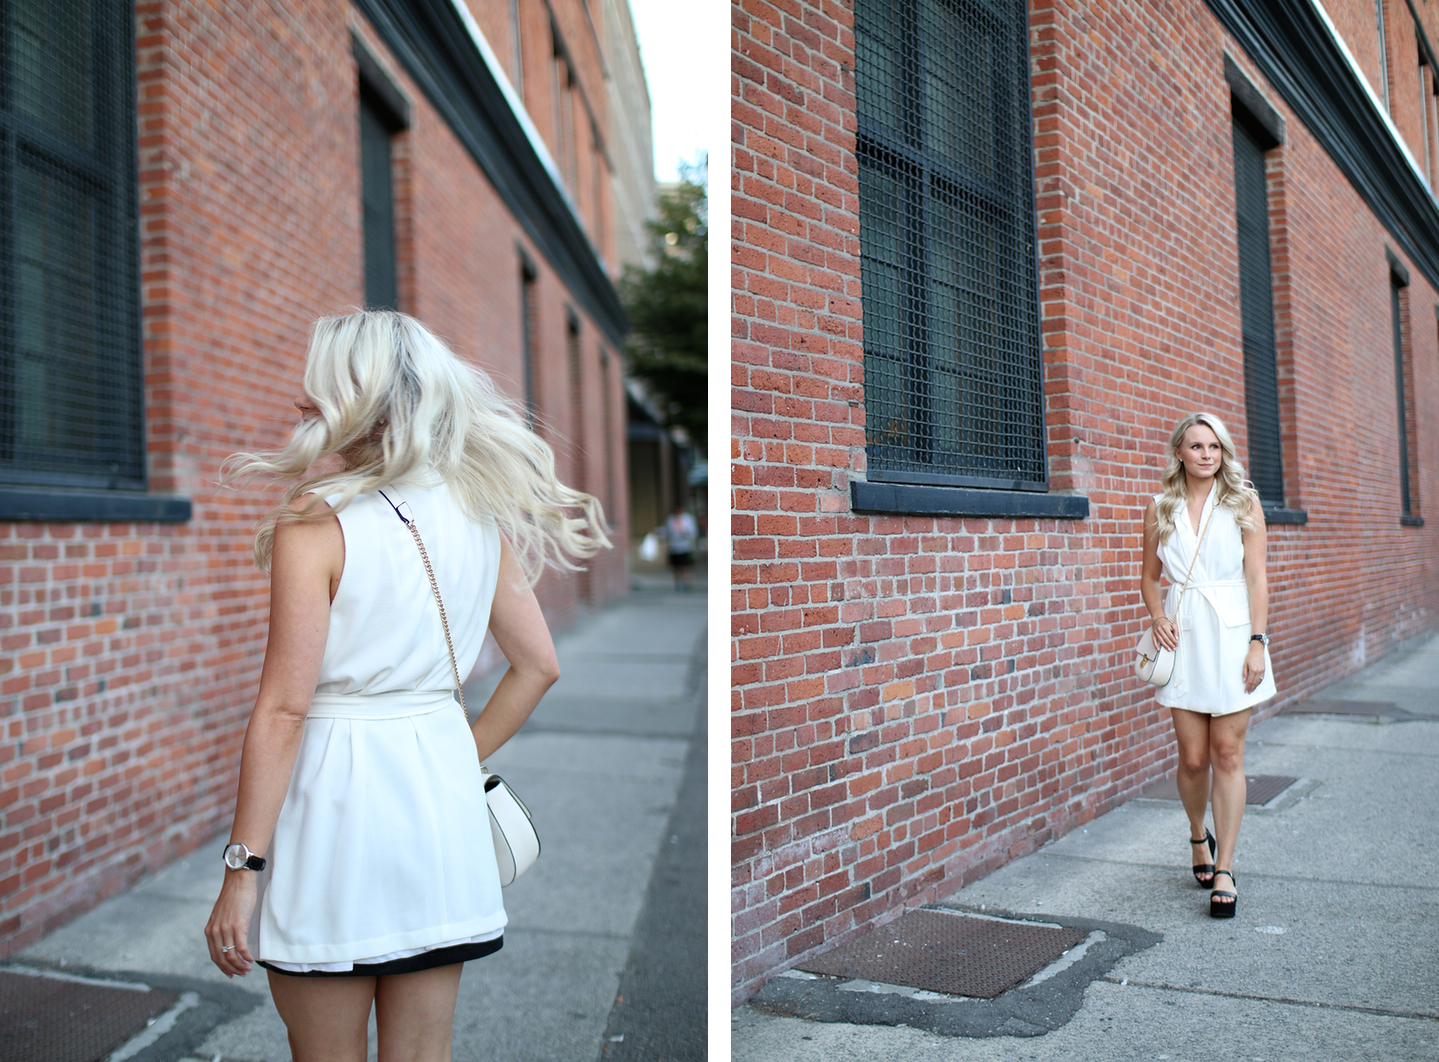 flatform trend outfit at sunset in vancouver gastown